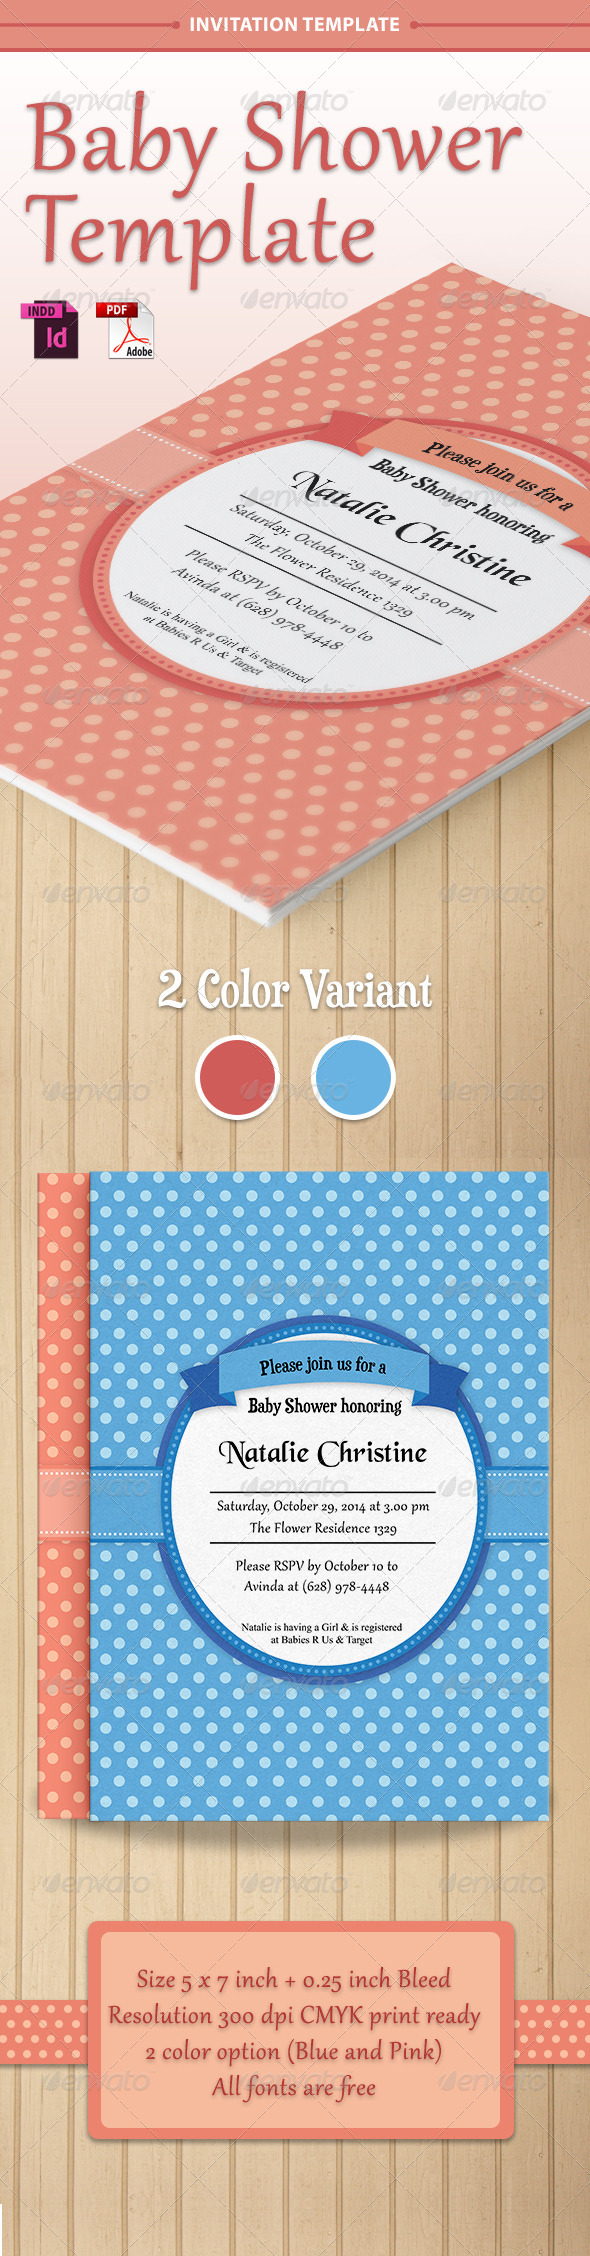 Baby Shower Template Vol 1